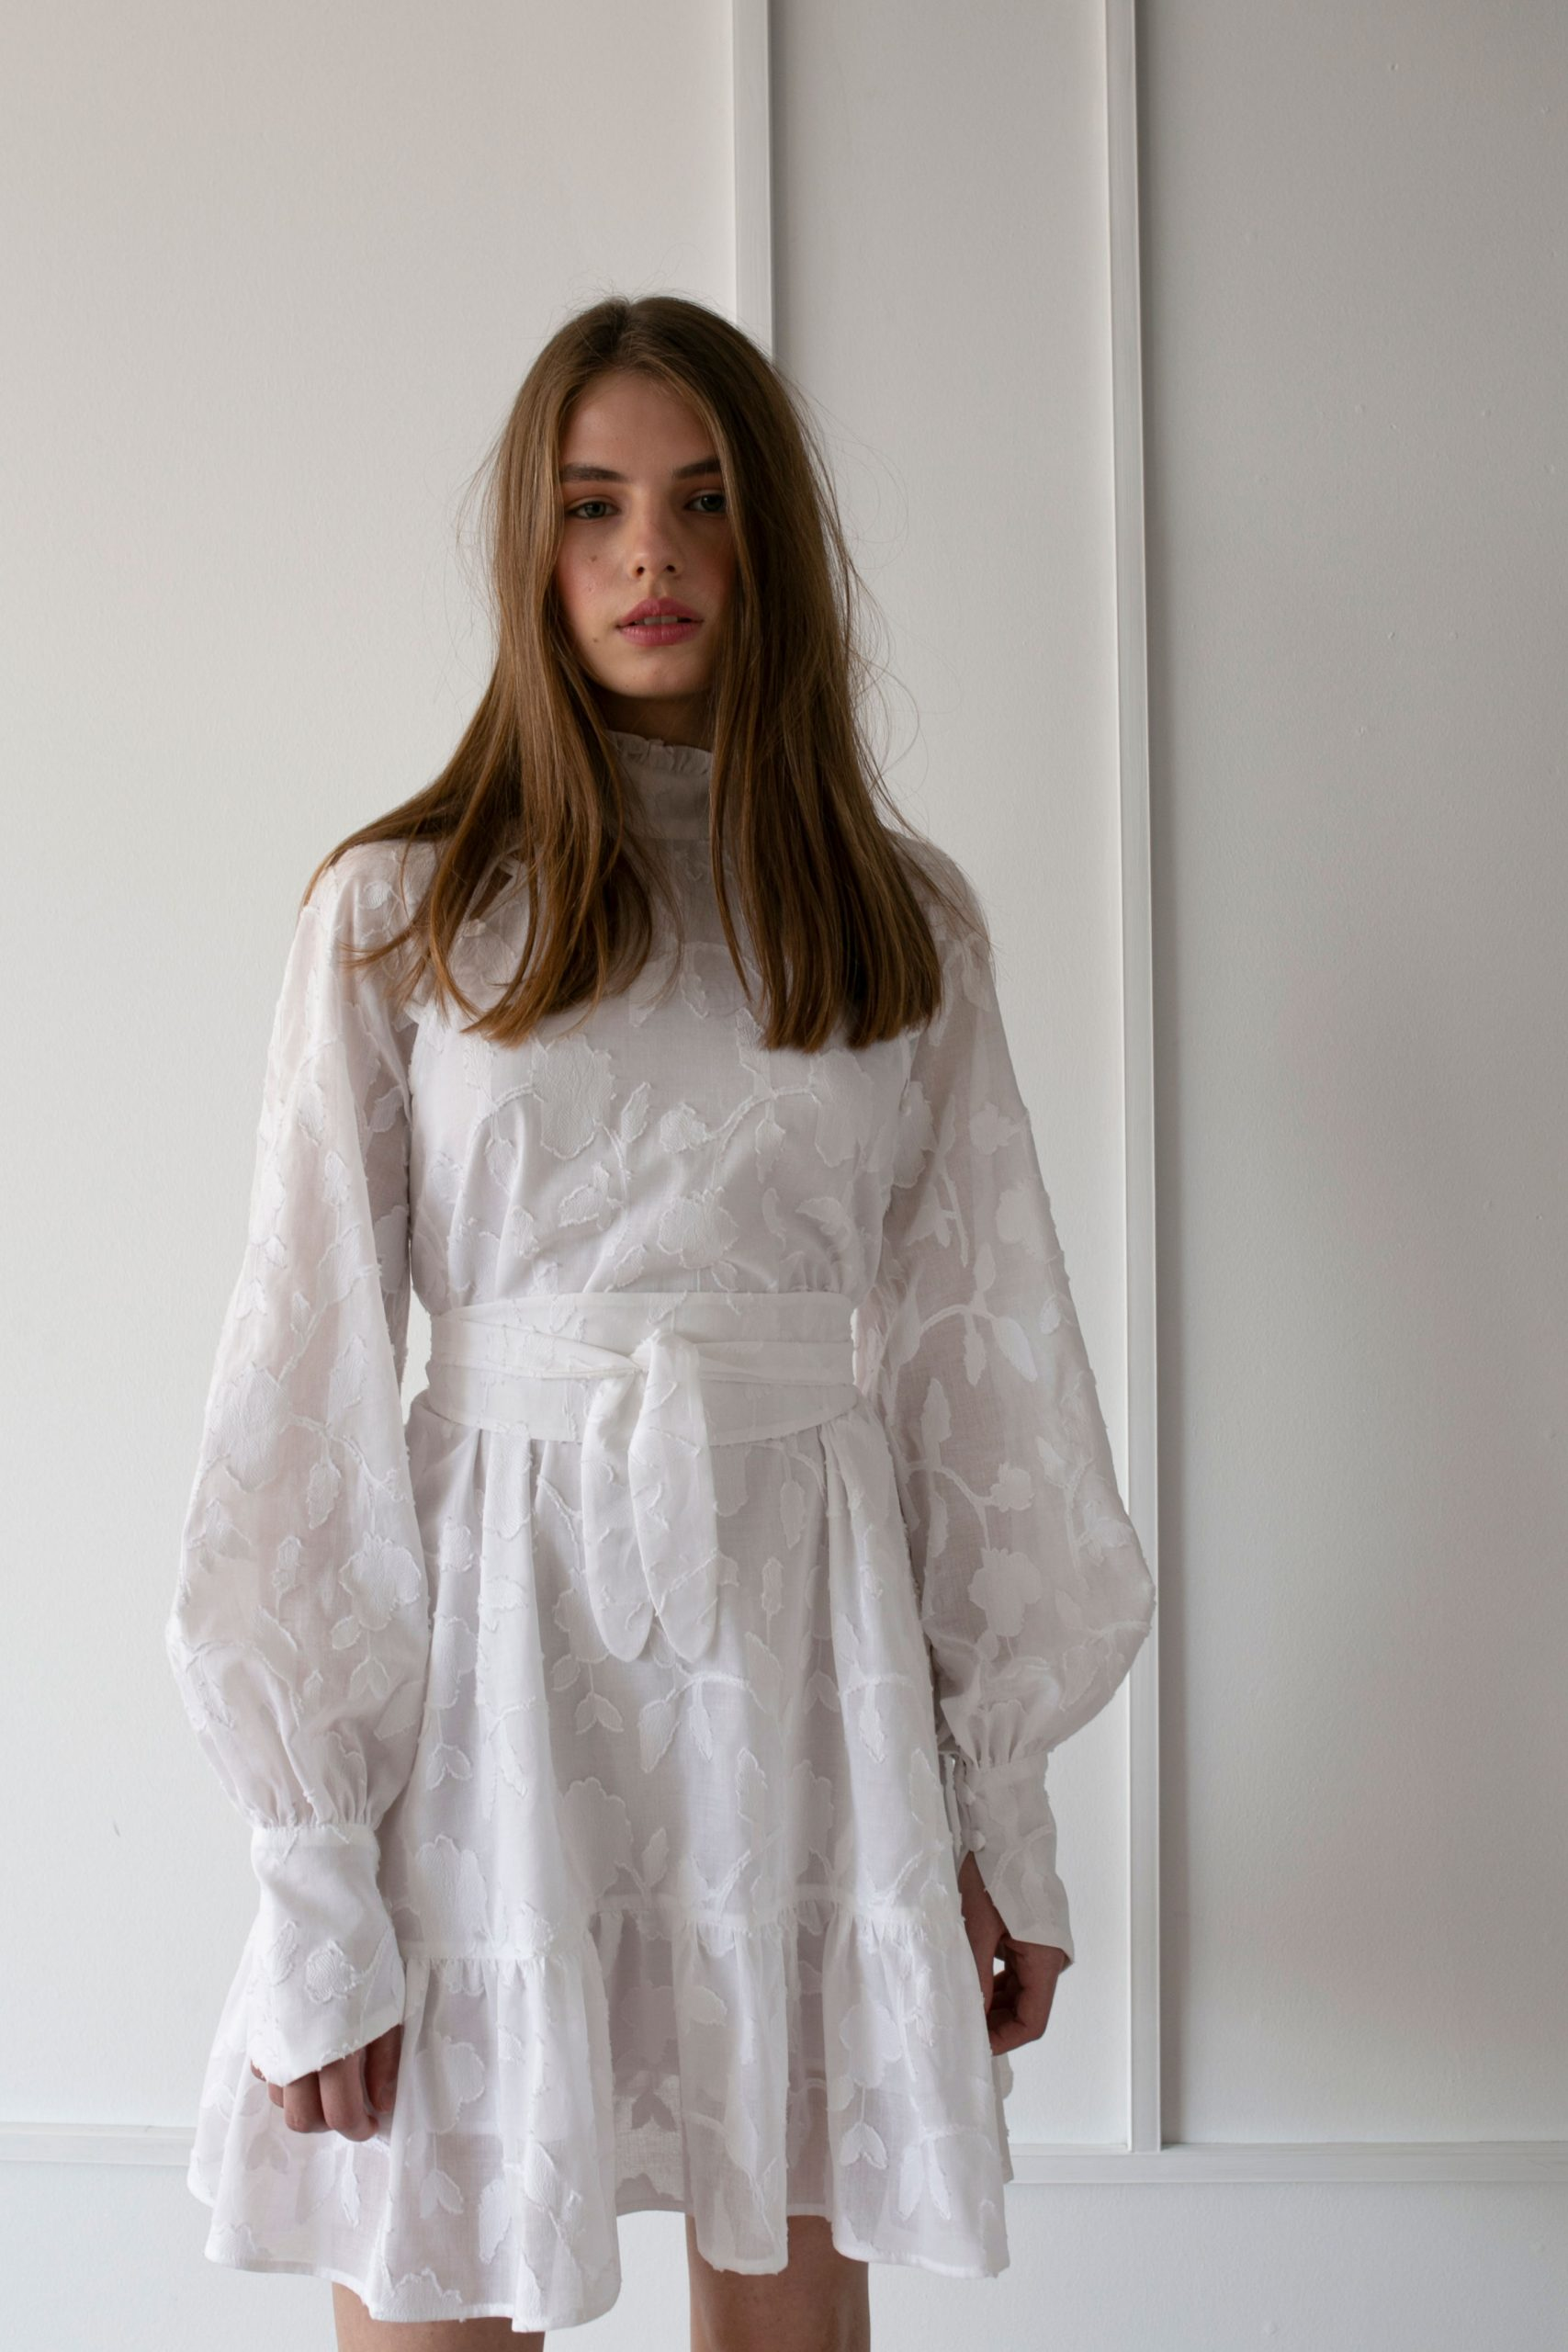 RAQUETTE SS20 - High White dress